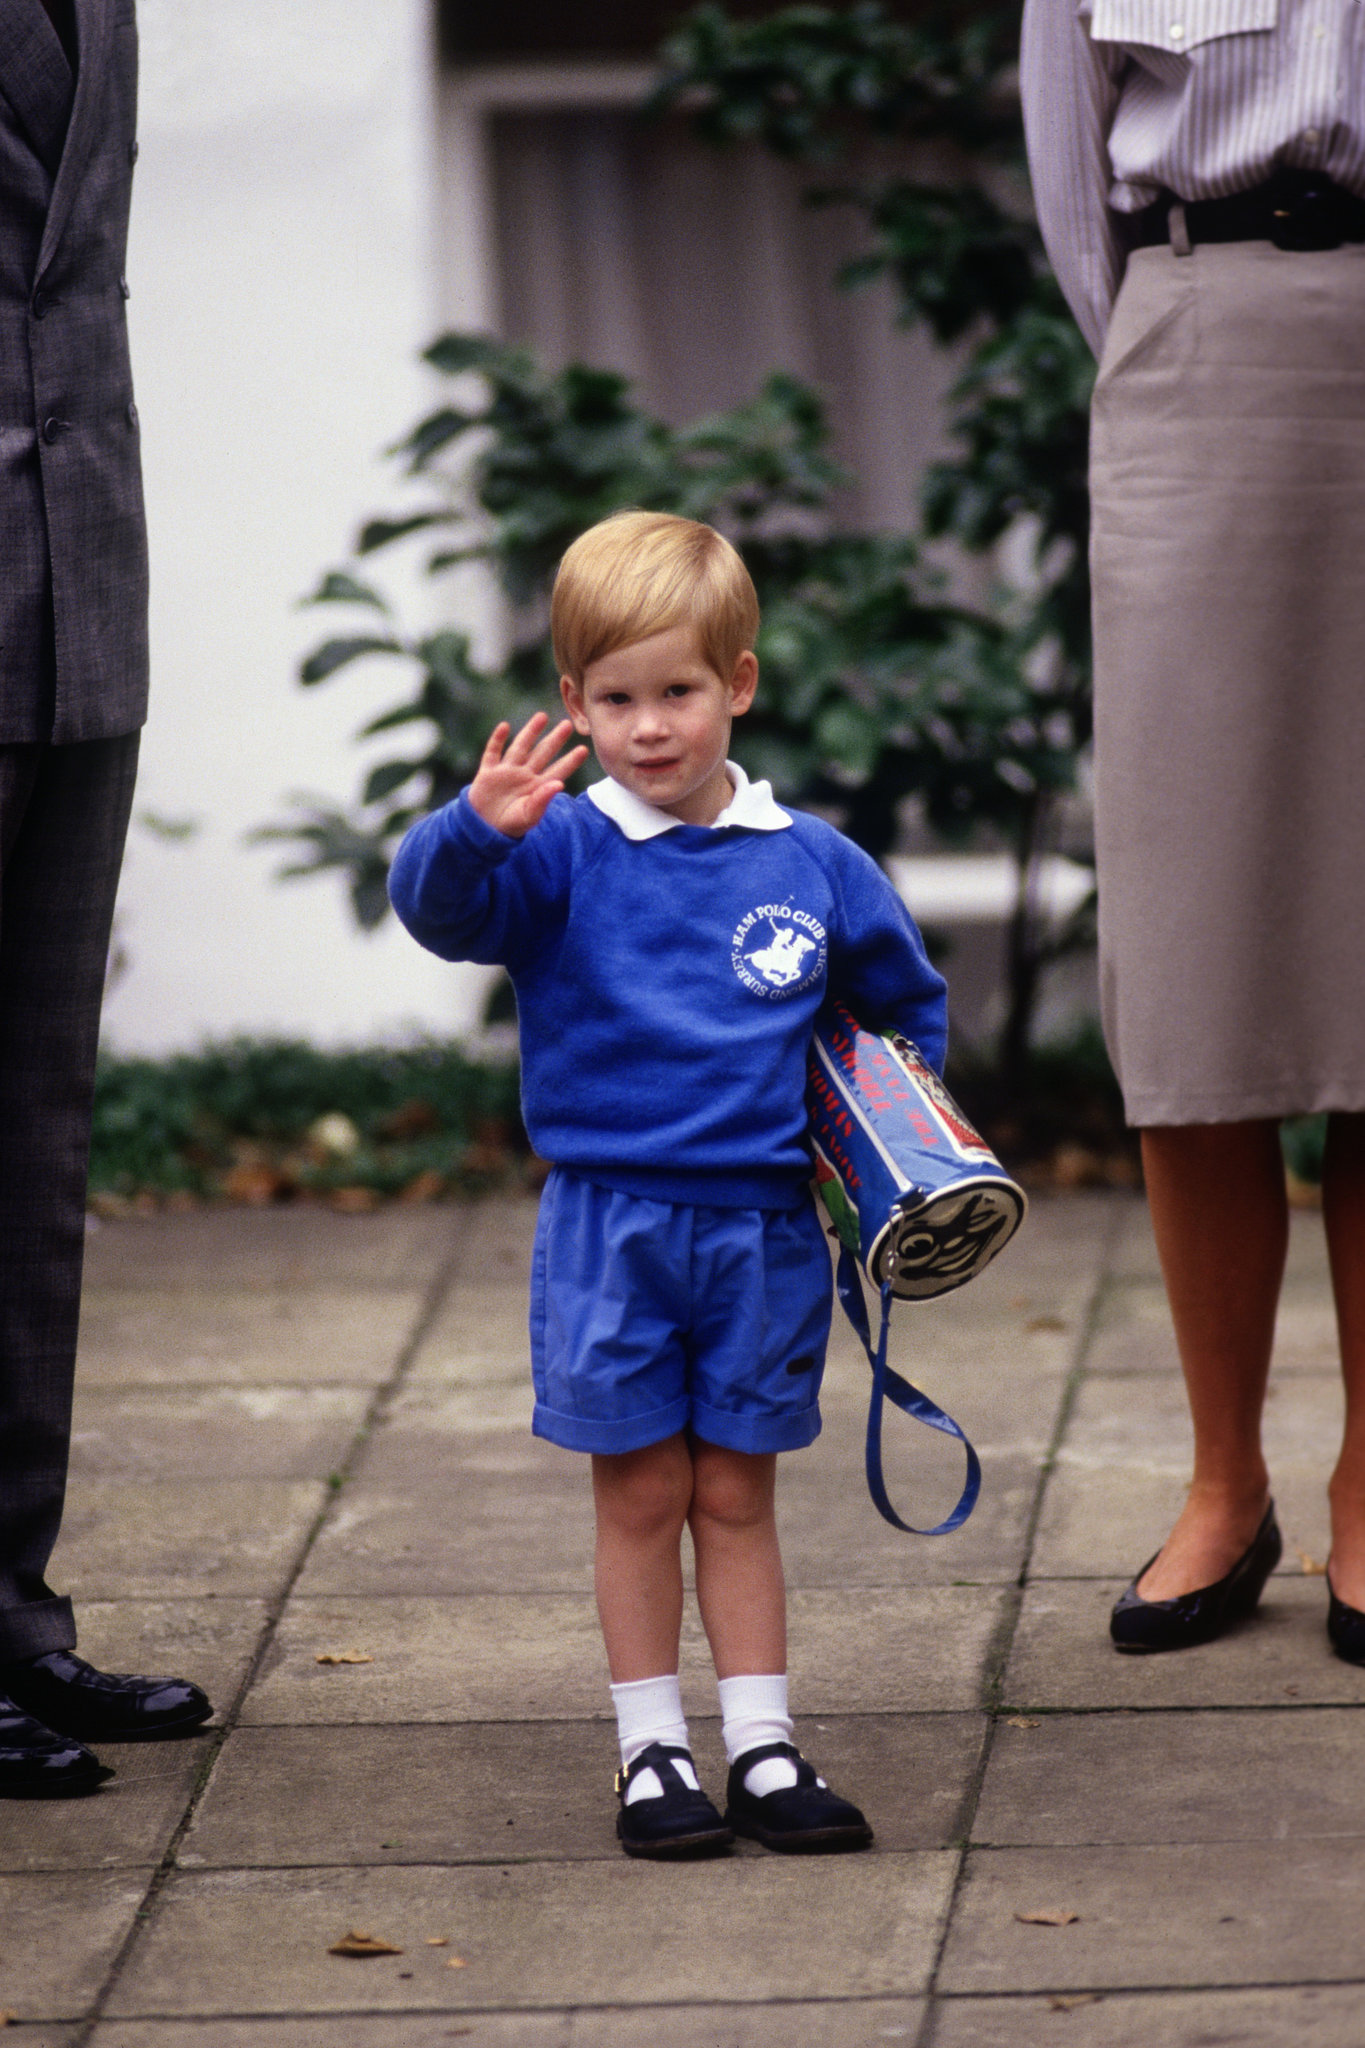 The 3-year-old Prince Harry looked cute in his uniform on his way to nursery school in London's Notting Hill in 1987.